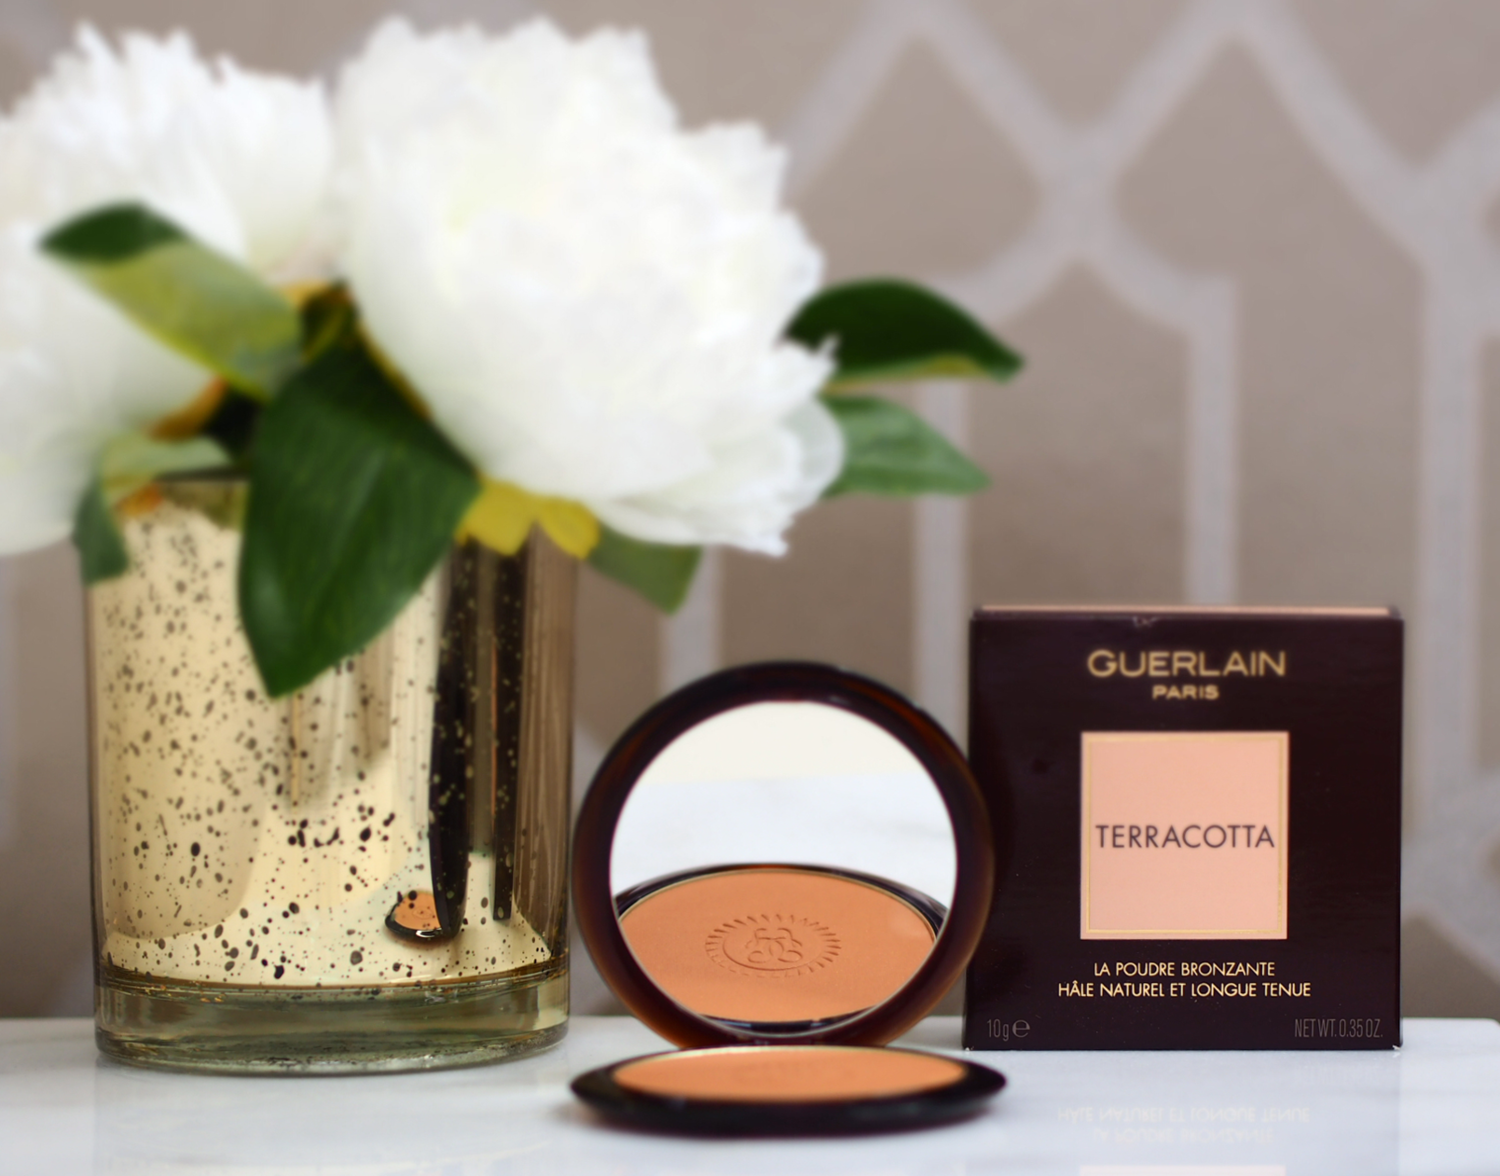 BEAUTY FAVOURITES, GUERLAIN, HOUSE OF FRASER, MAKEUP, LAURA BLAIR, LONDON FASHION GIRL